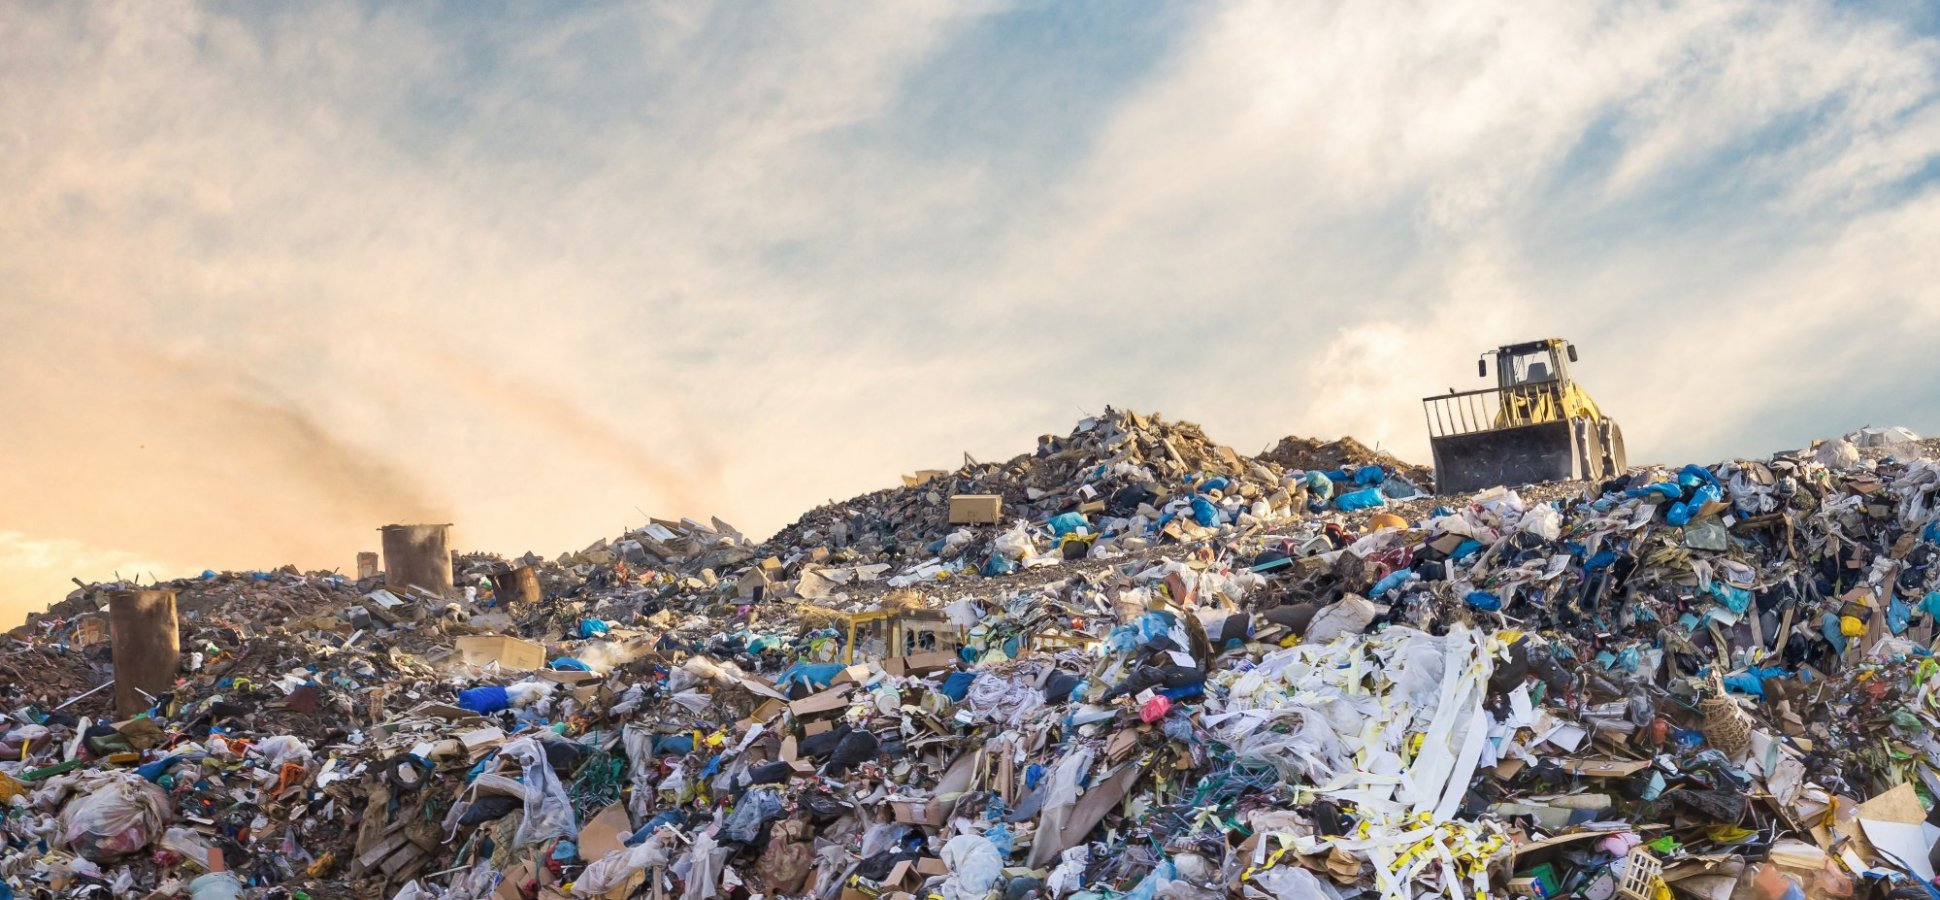 Reducing Disposable Consumerism Is The Key To Better Design and Lowering Landfill